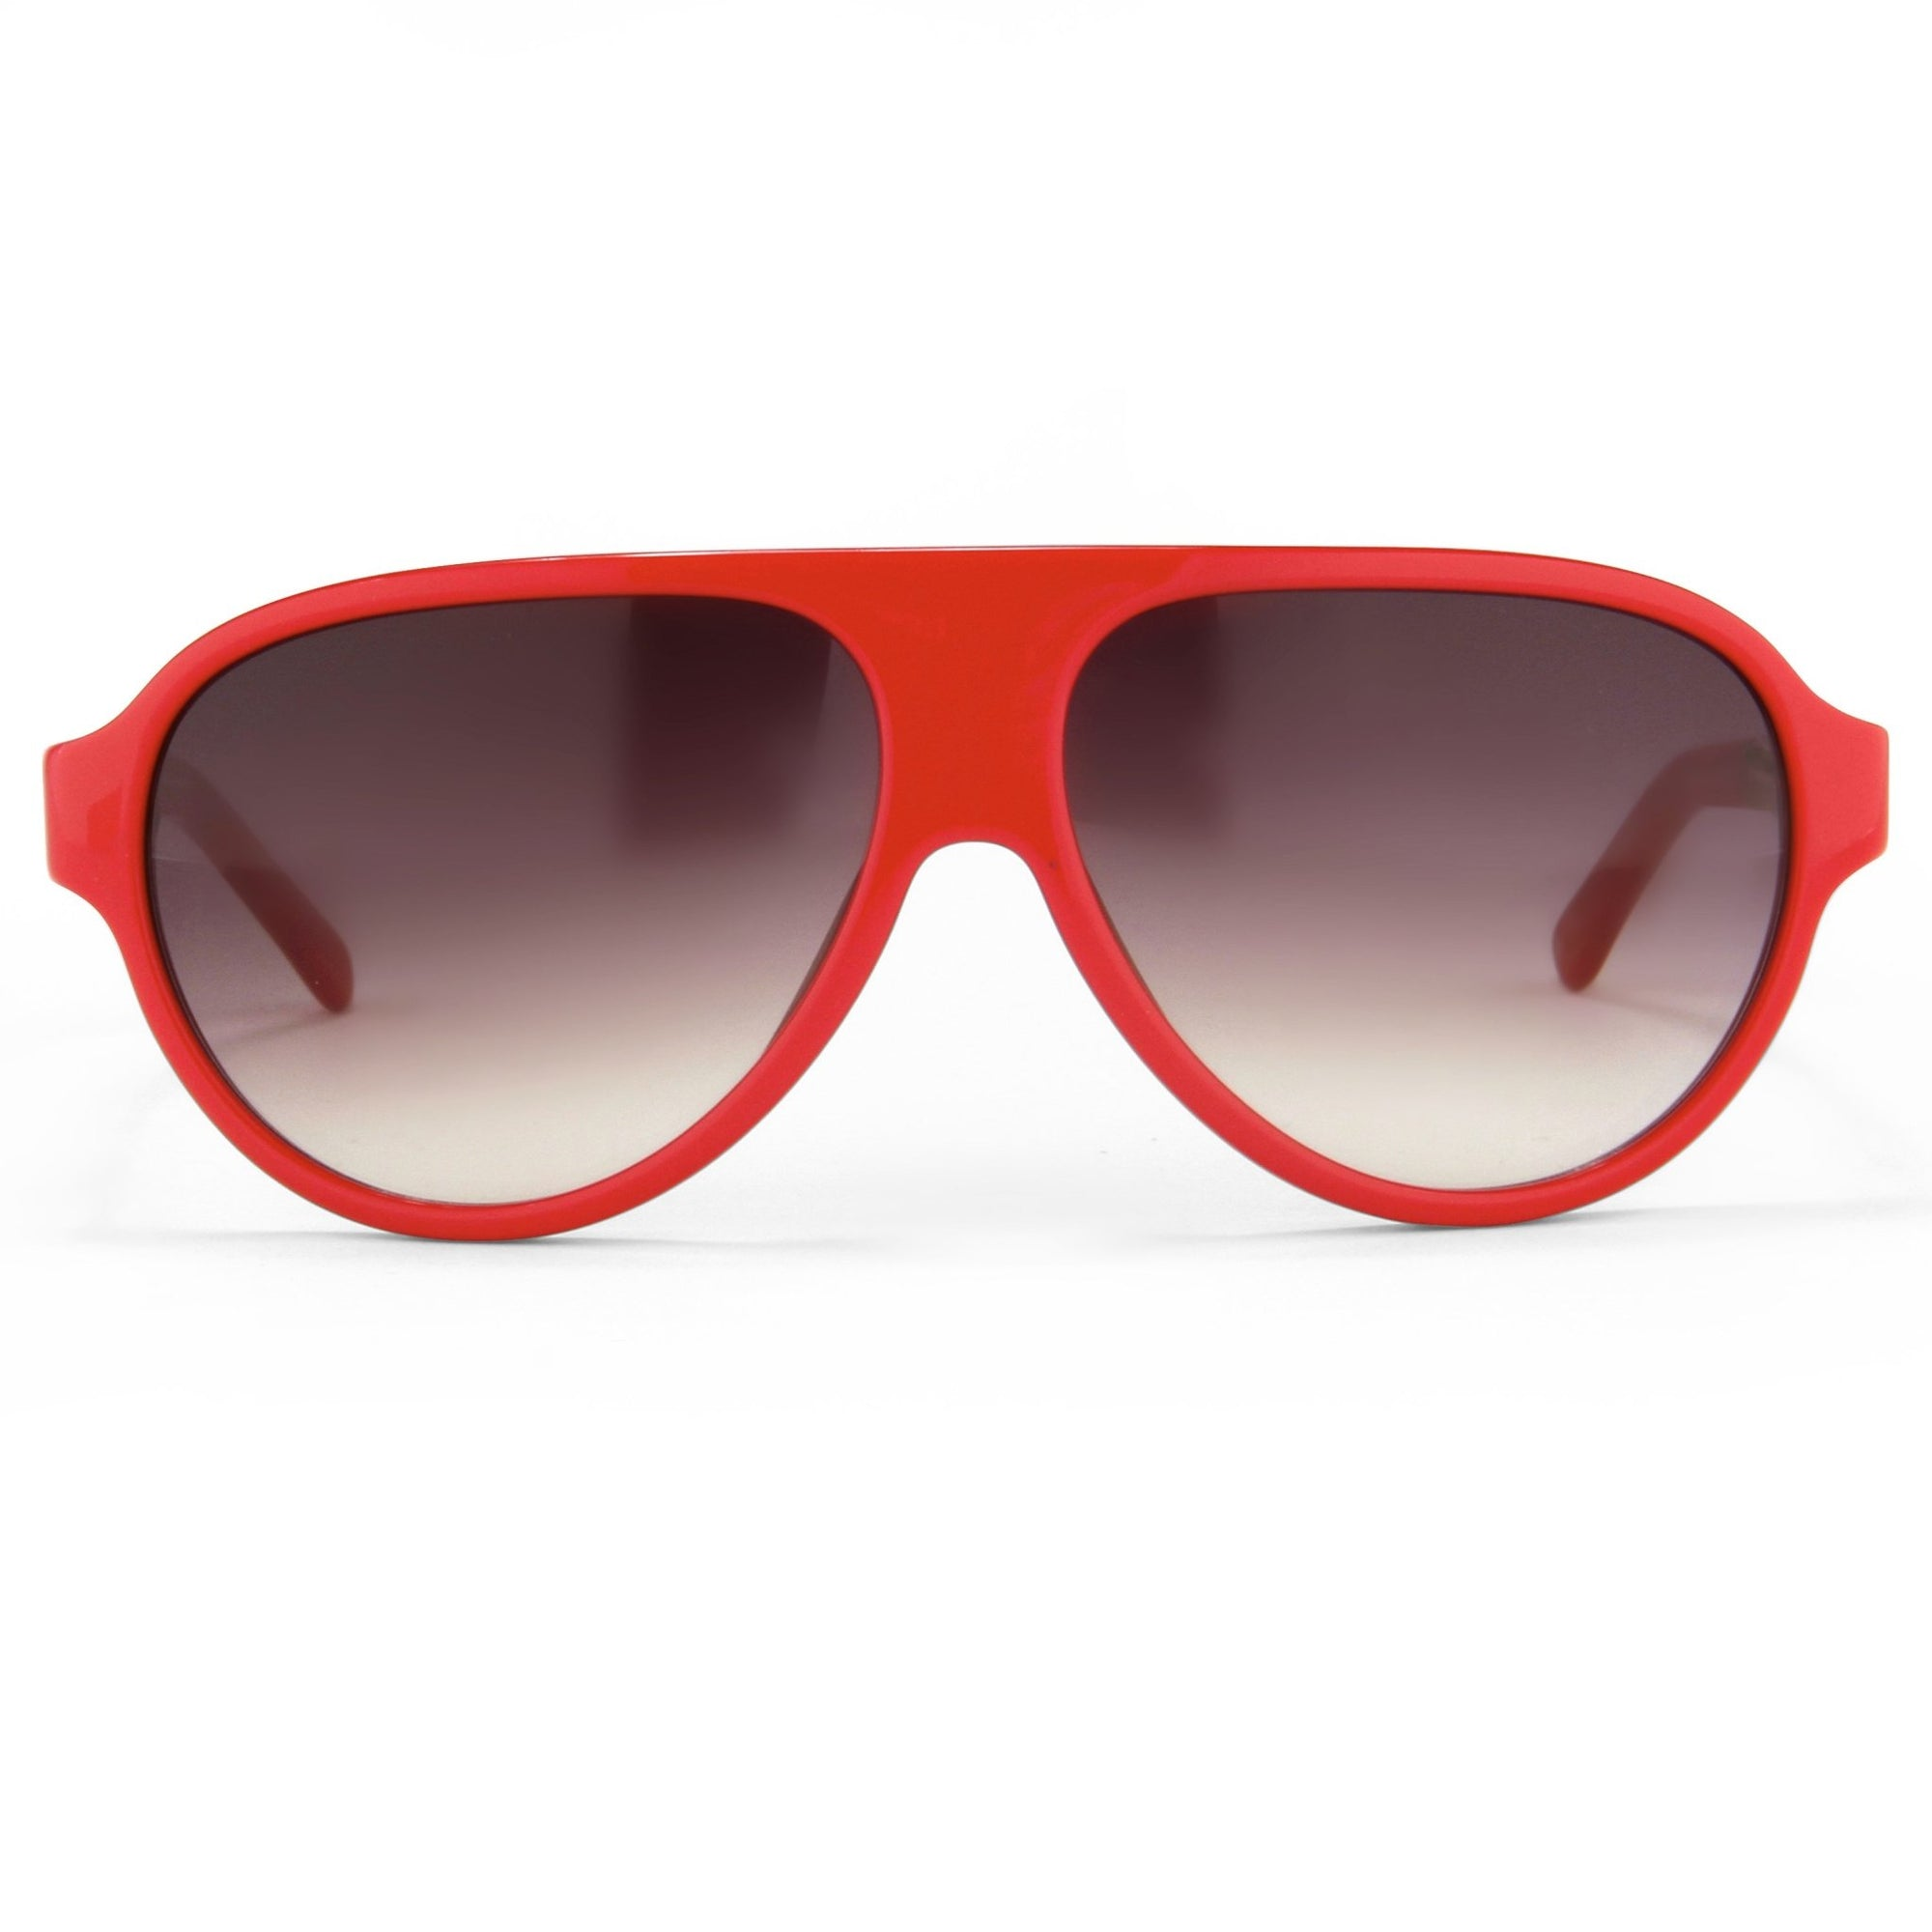 Prabal Gurung Sunglasses Unisex Aviator Red Acetate CAT 2 Grey Gradient Lenses PG16C4SUN - Watches & Crystals